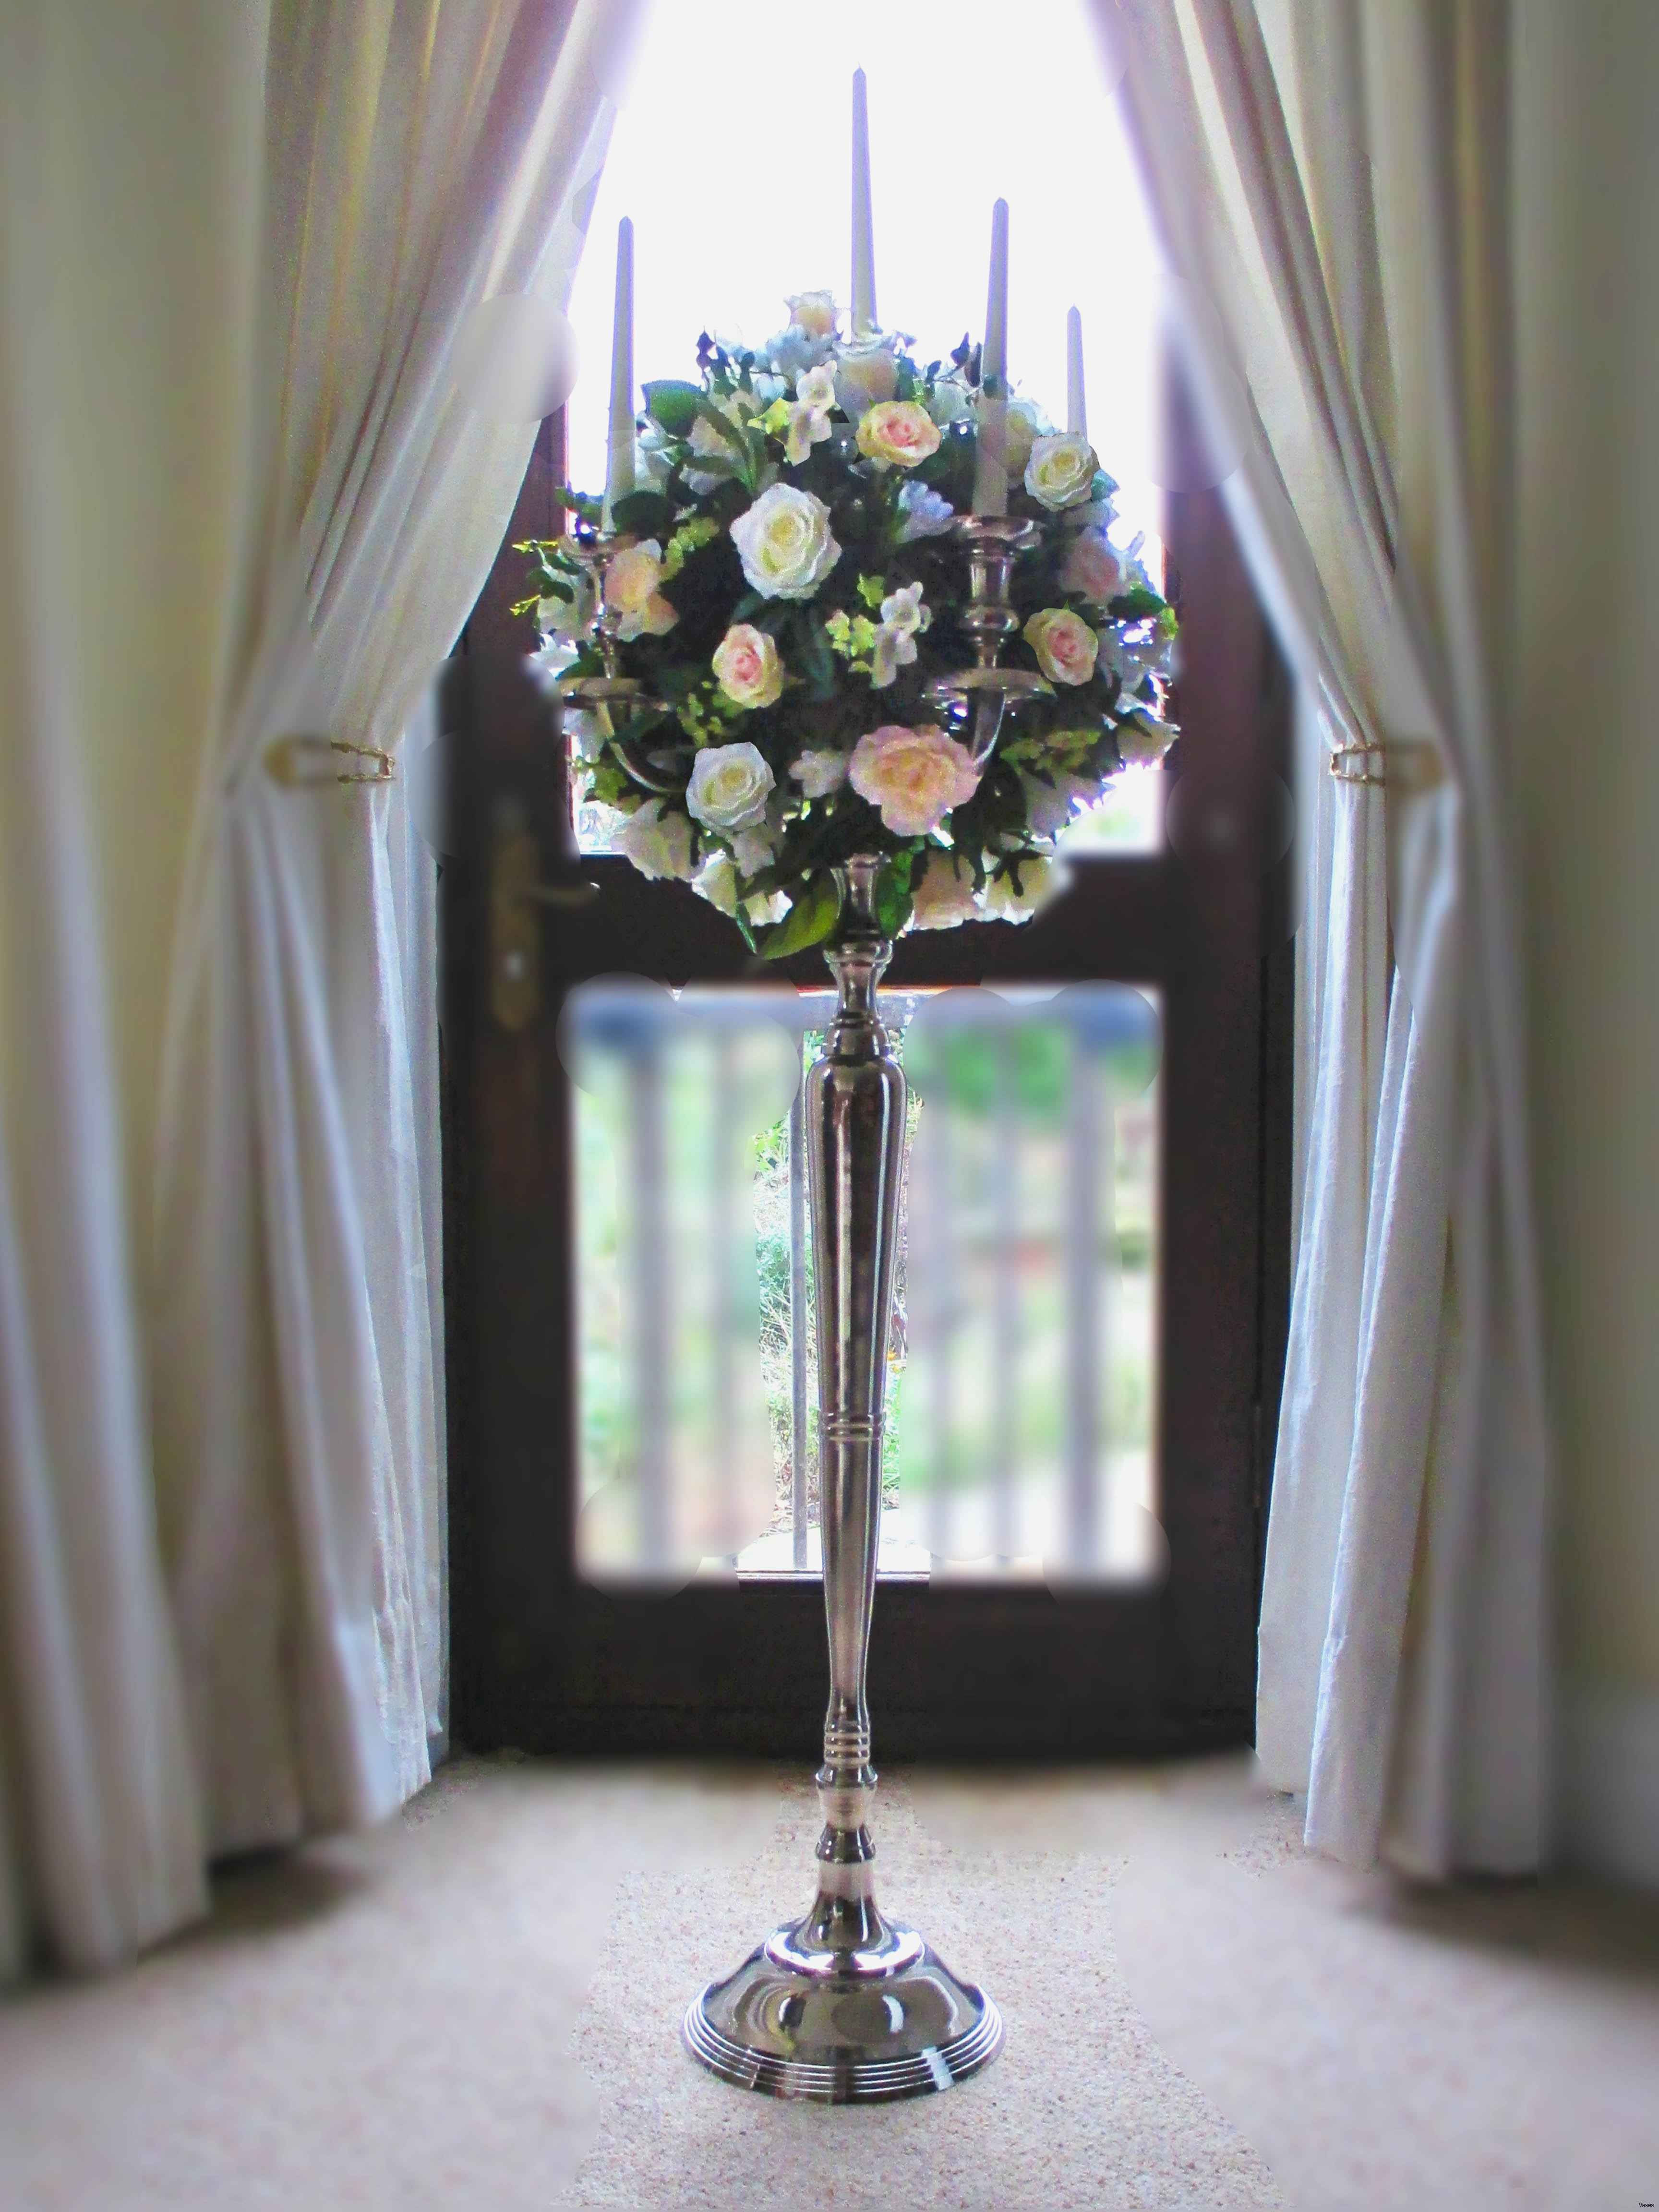 wedding vases for sale of elegant fall wedding bouquet wedding theme with regard to cheap wedding bouquets packages 5397h vases silver vase leeds i 0d design fall silk flower